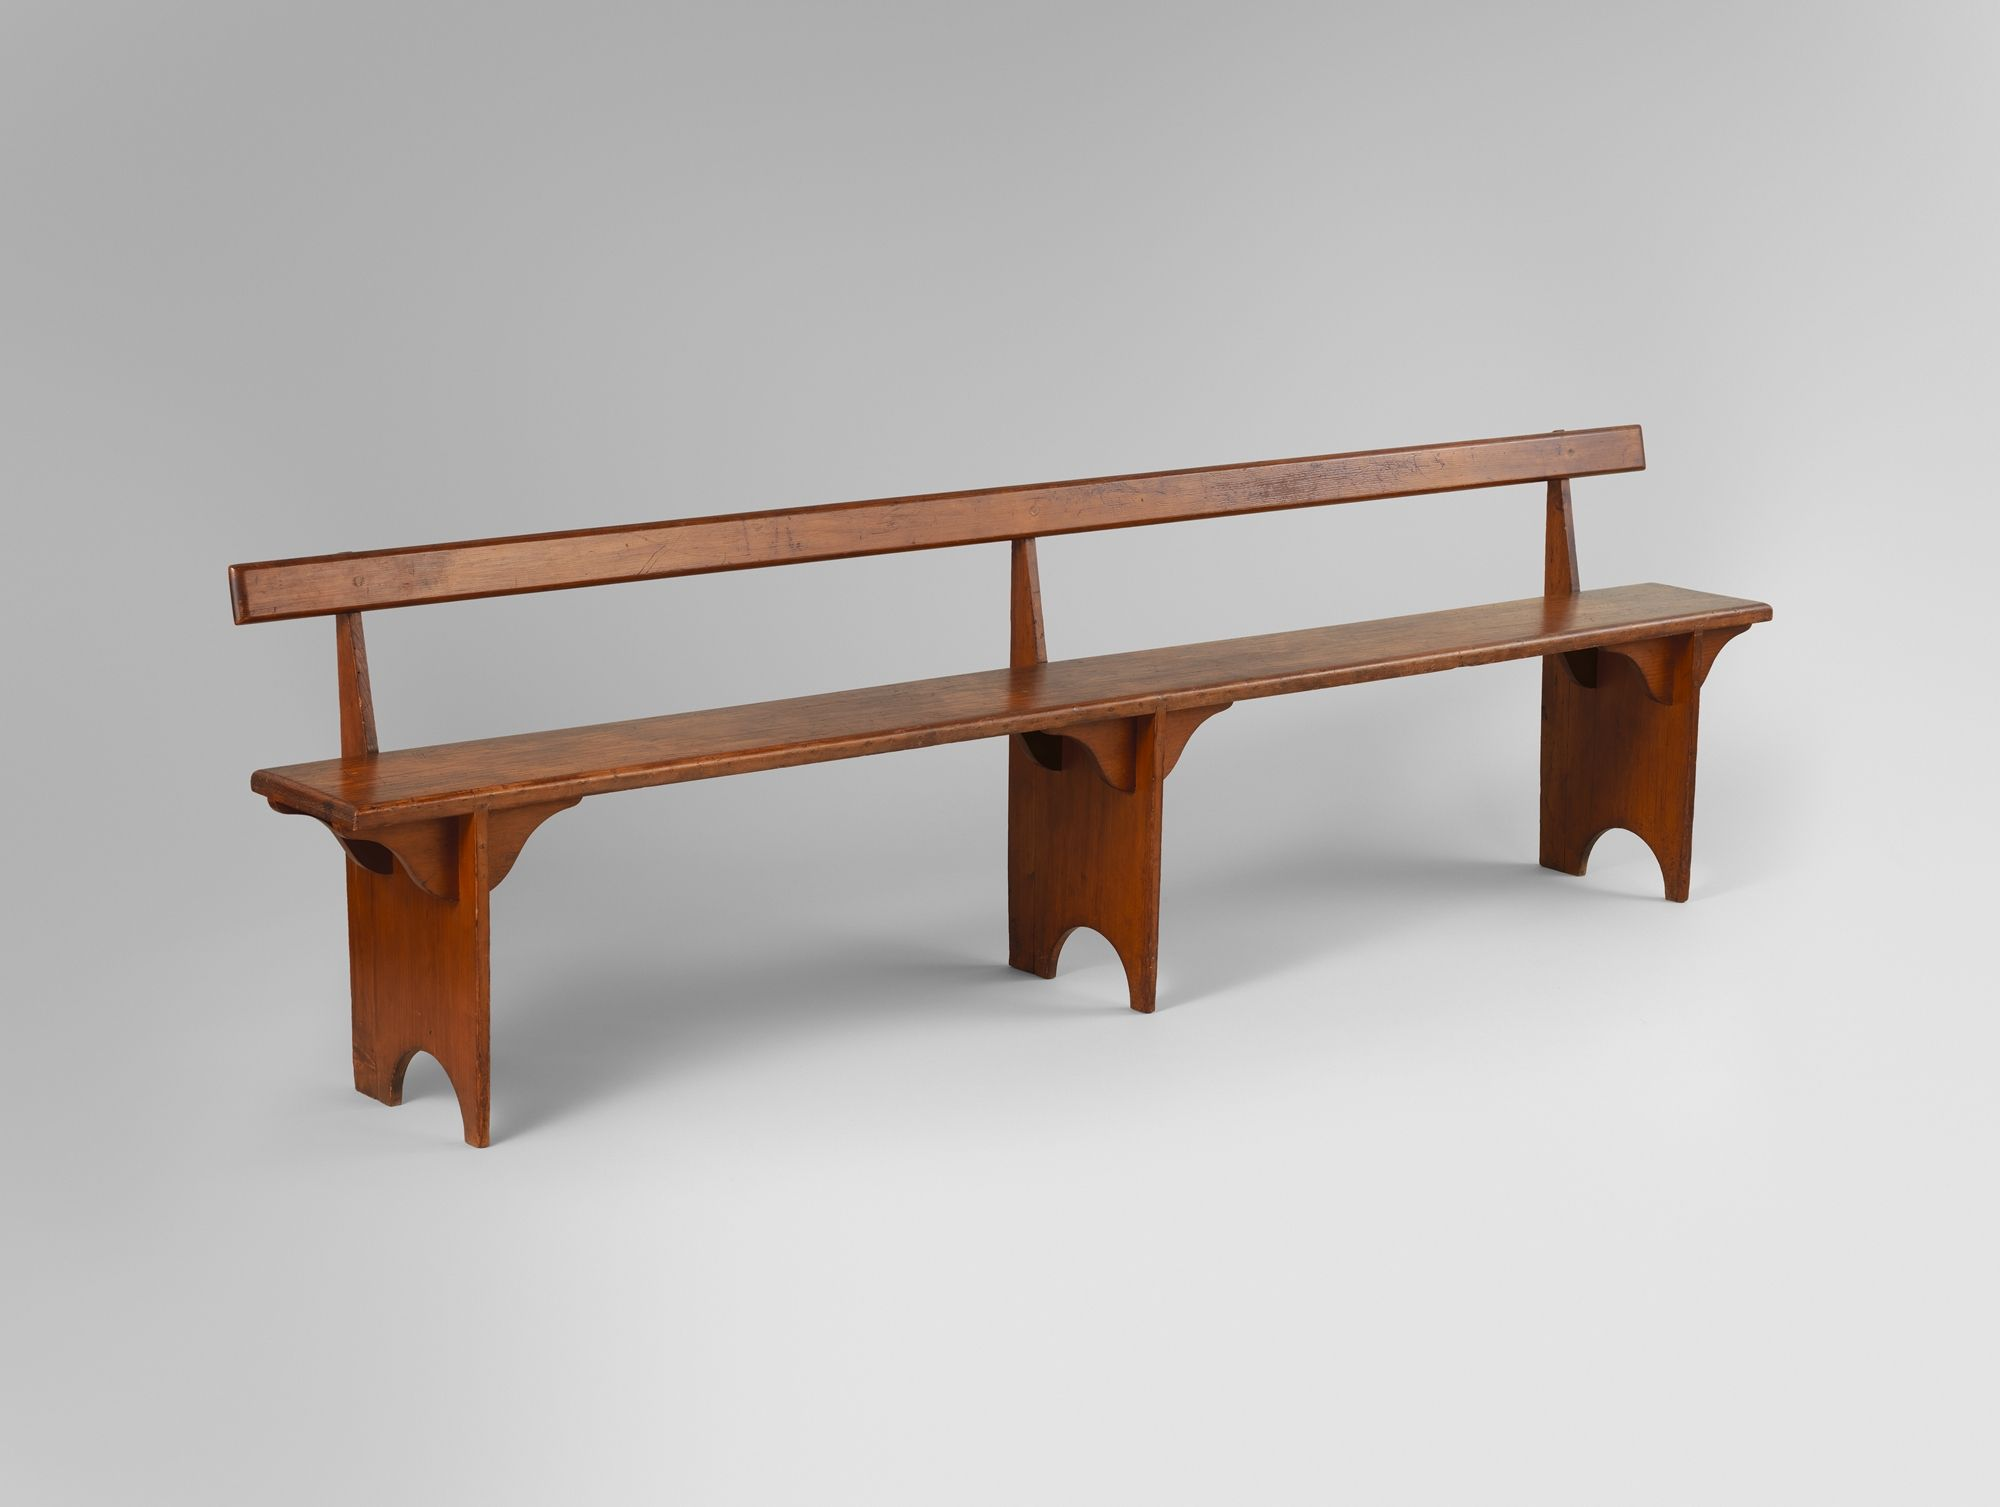 Shaker bench in pine, Hancock, Massachusetts.